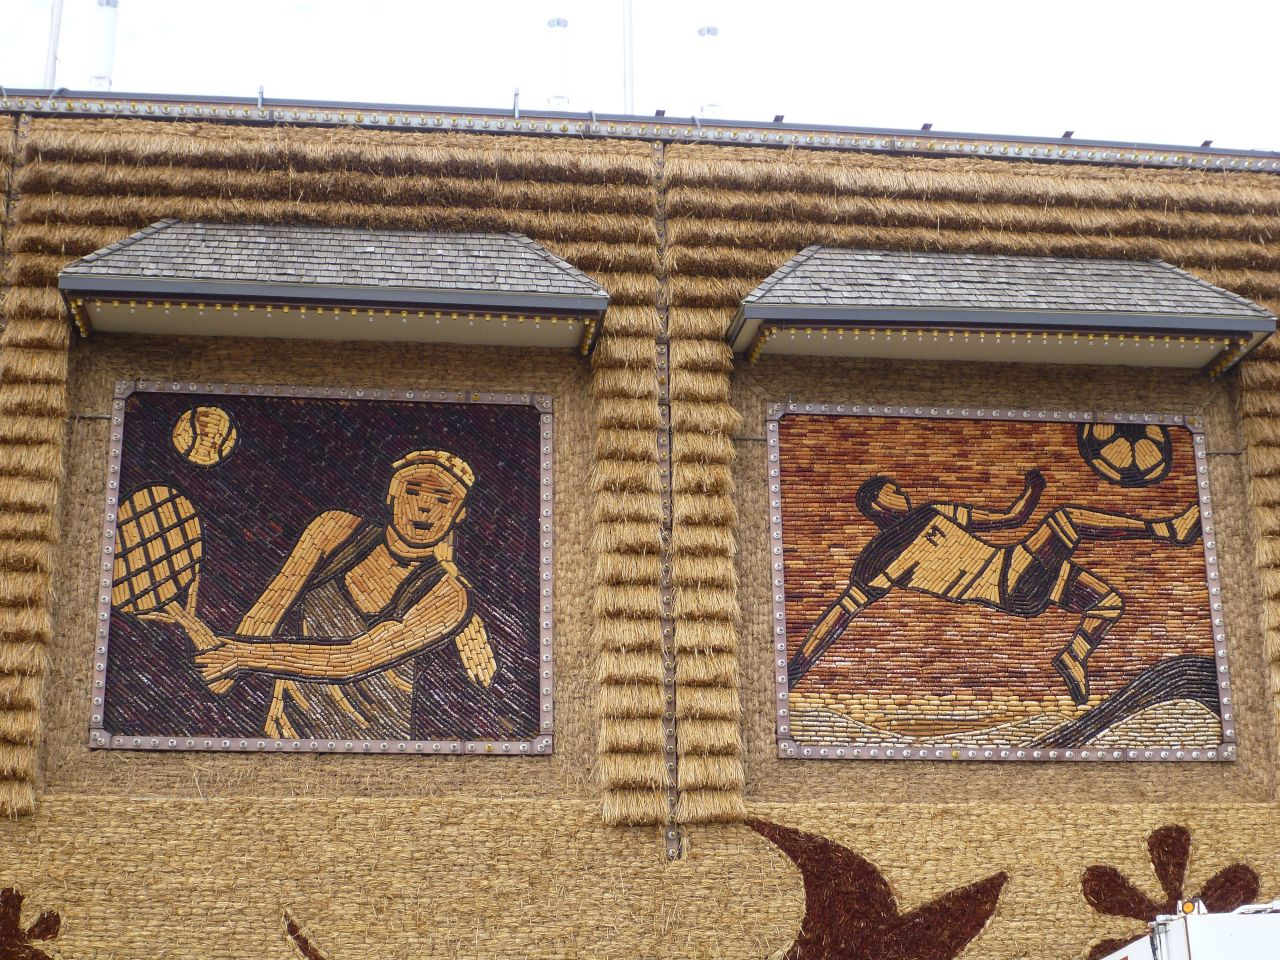 Some Of The Murals That Adorn The Outside Of The Corn Palace